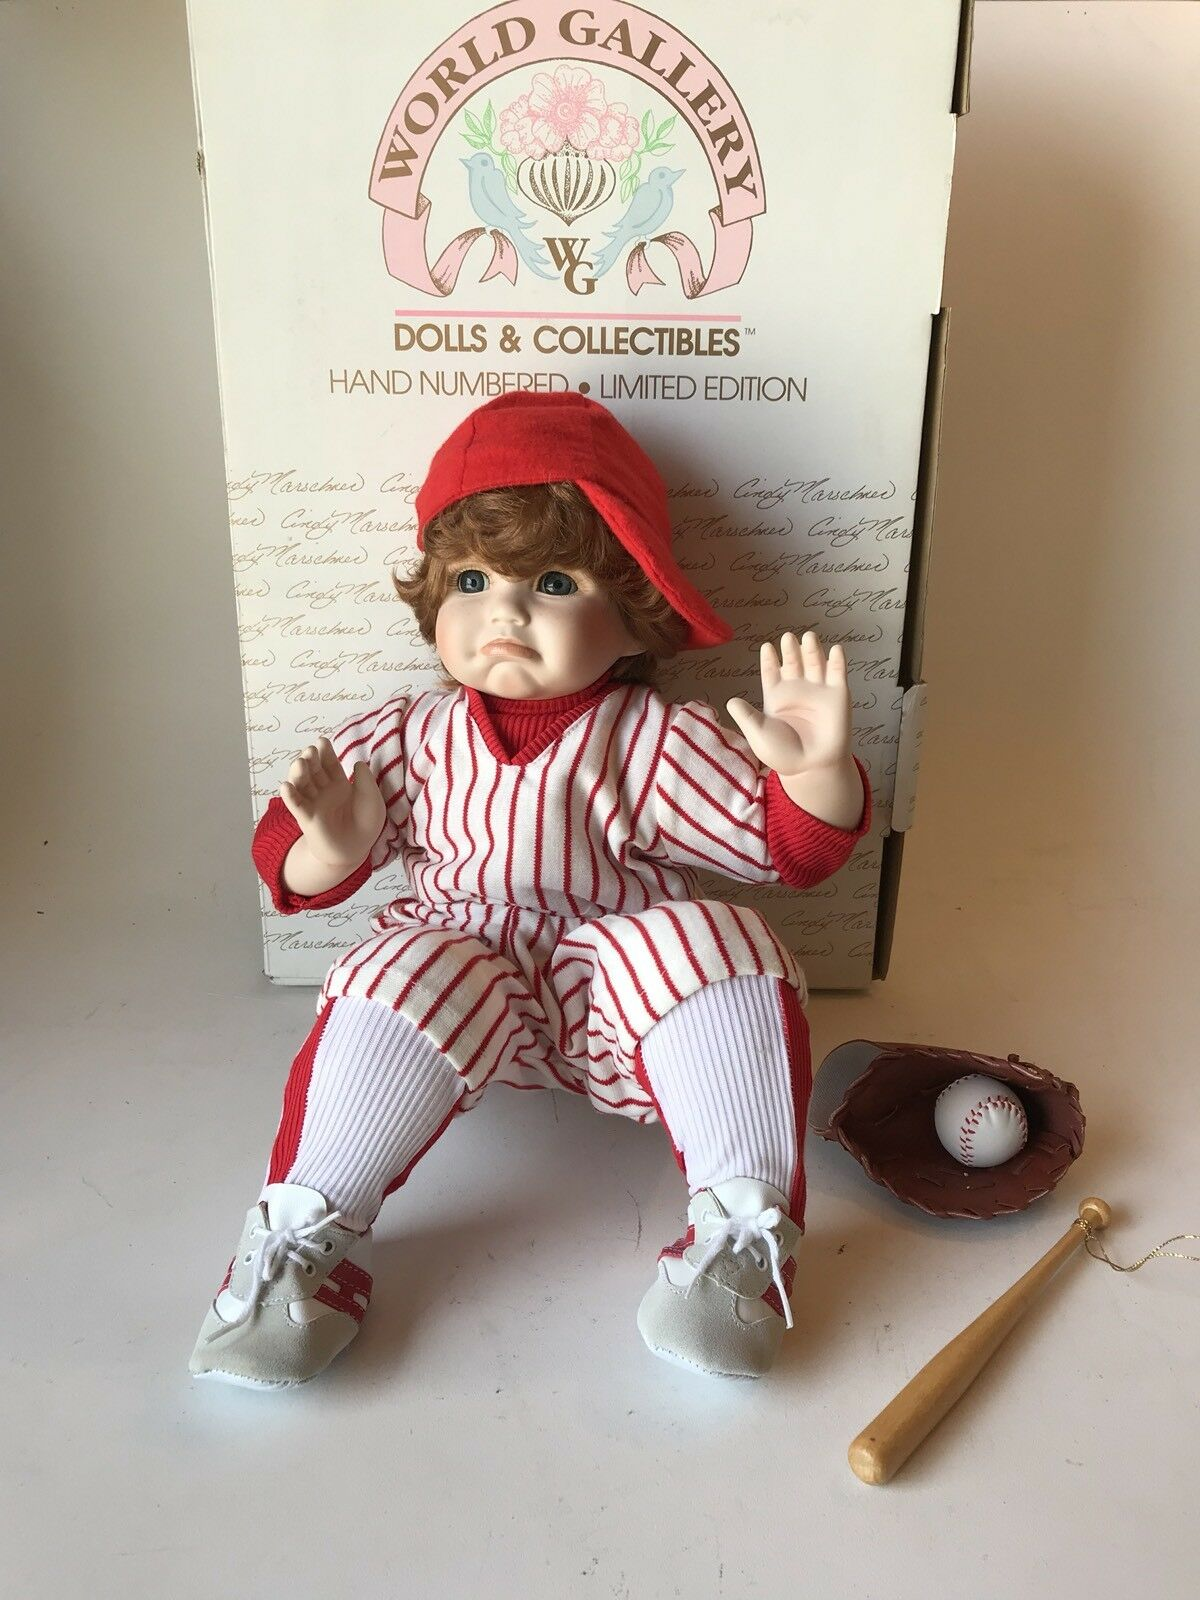 LIMITED BILLY POUTY FACE CINDY MARSCHNER WORLD GALLERY DOLL ~ Shop 1